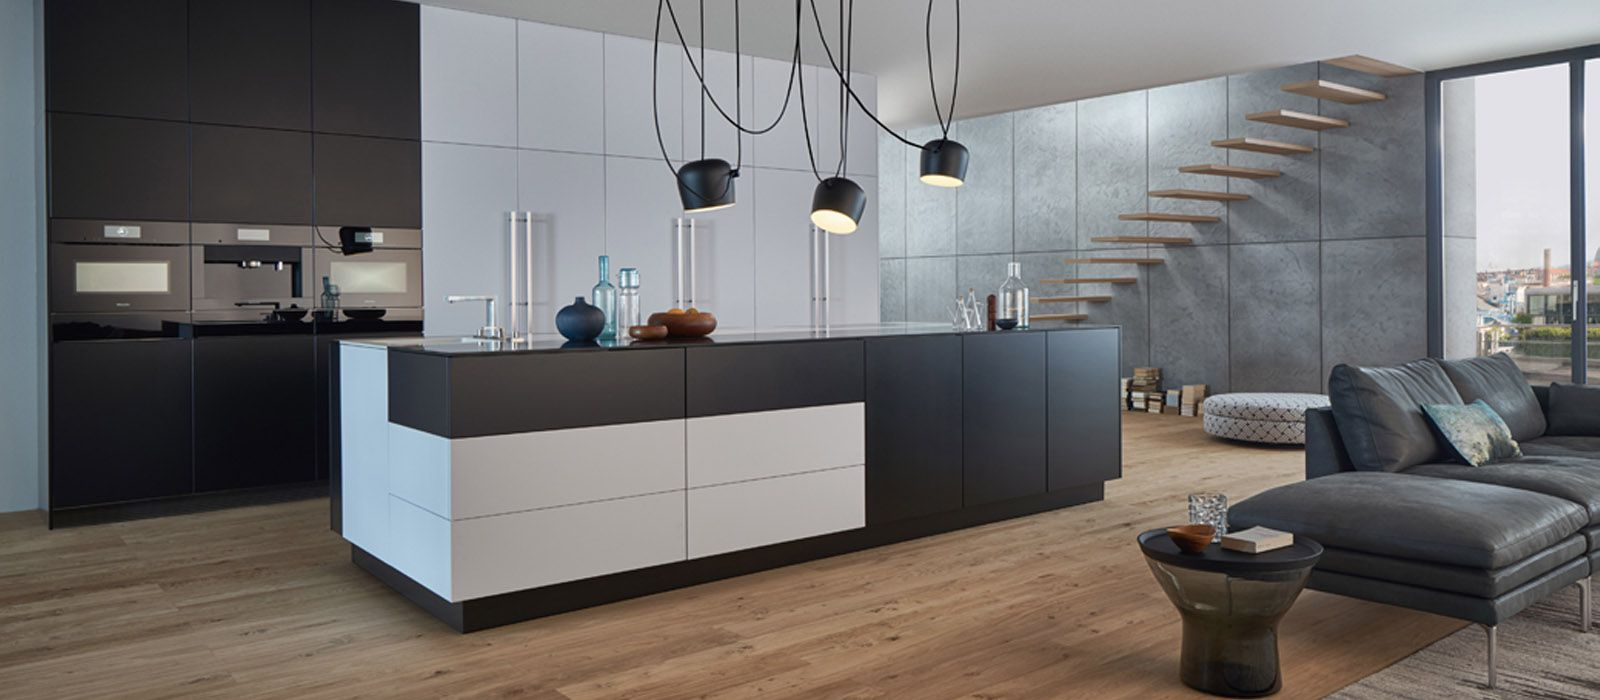 Innovative Award Winning European Kitchen Design